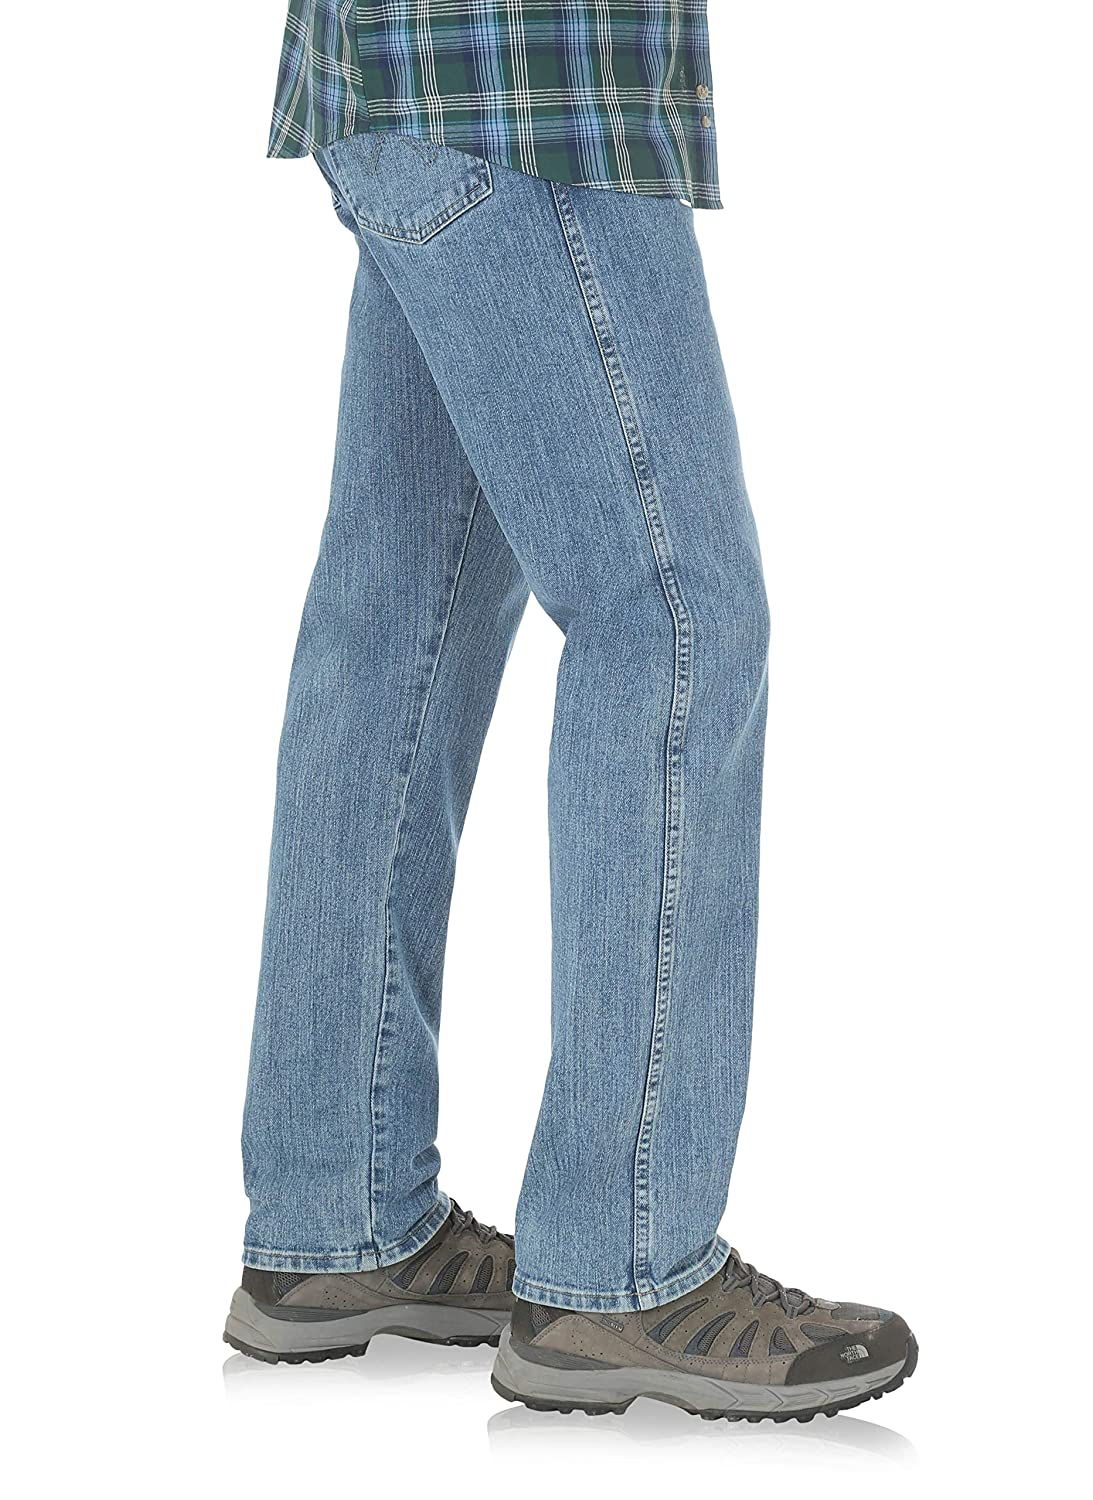 Wrangler Mens Performance Series Relaxed Fit Jeans Light Stone